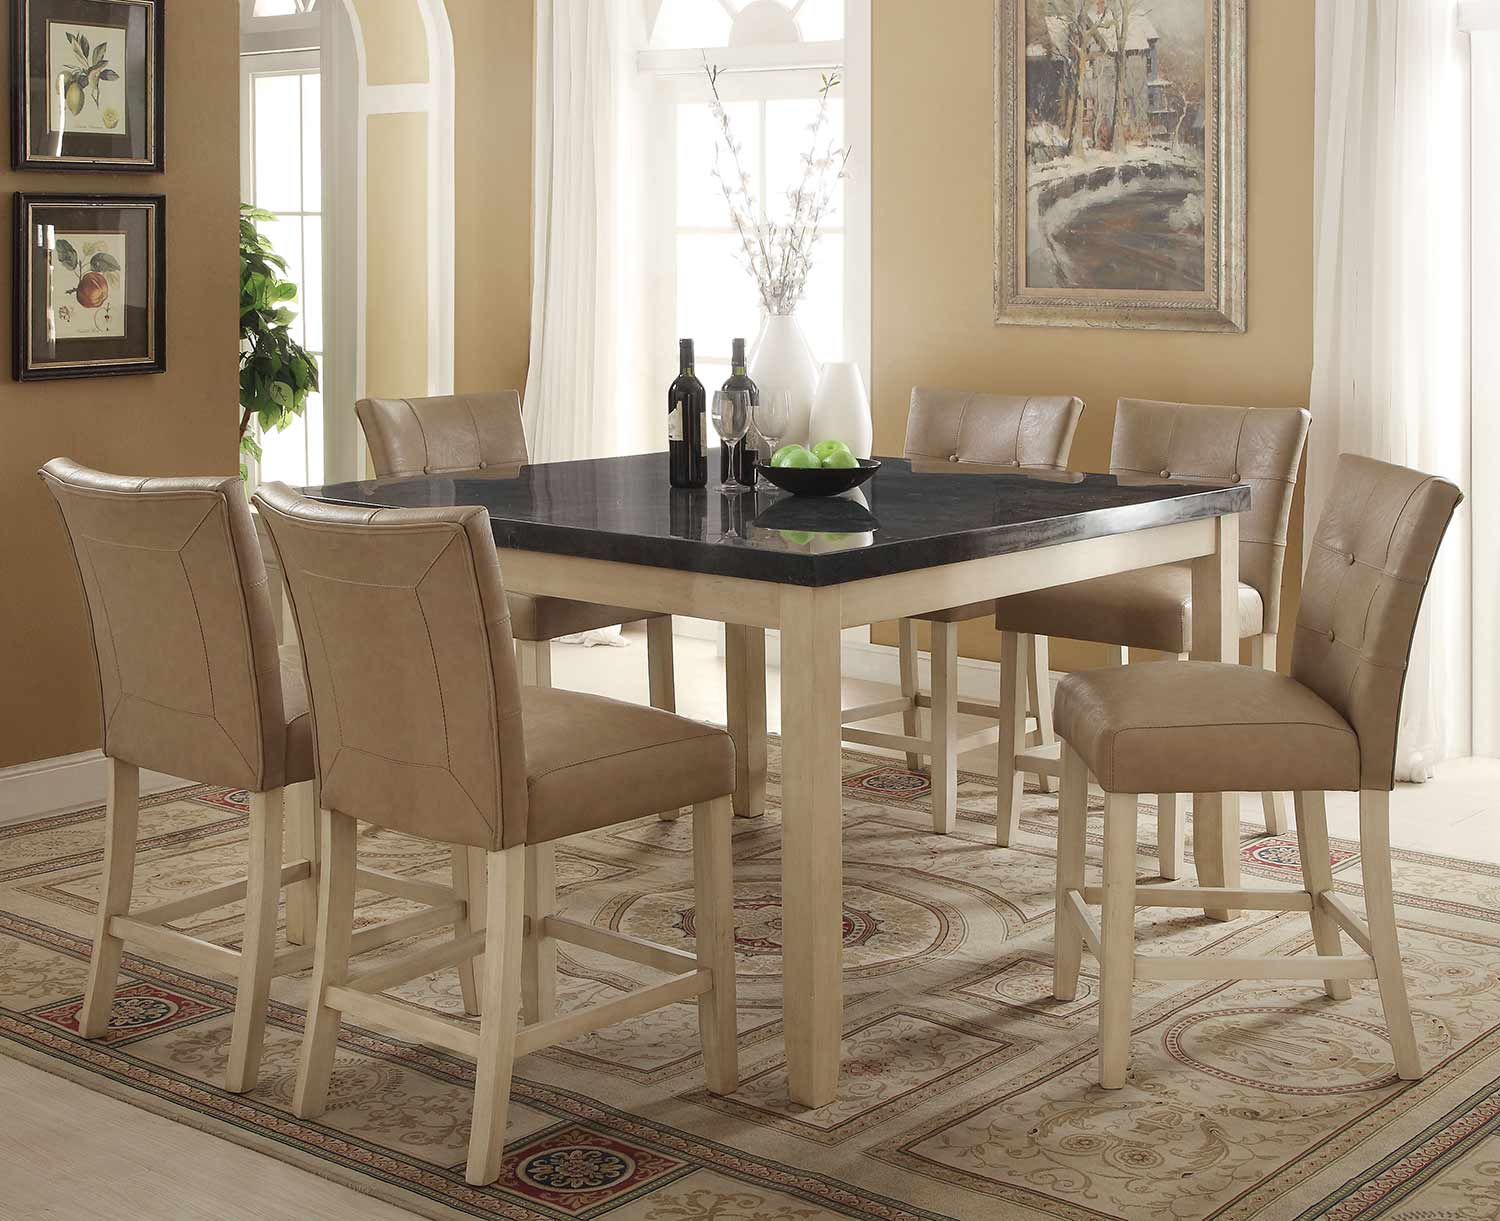 Acme Faymoor Counter Height Dining Set - Limestone Marble/Antique White